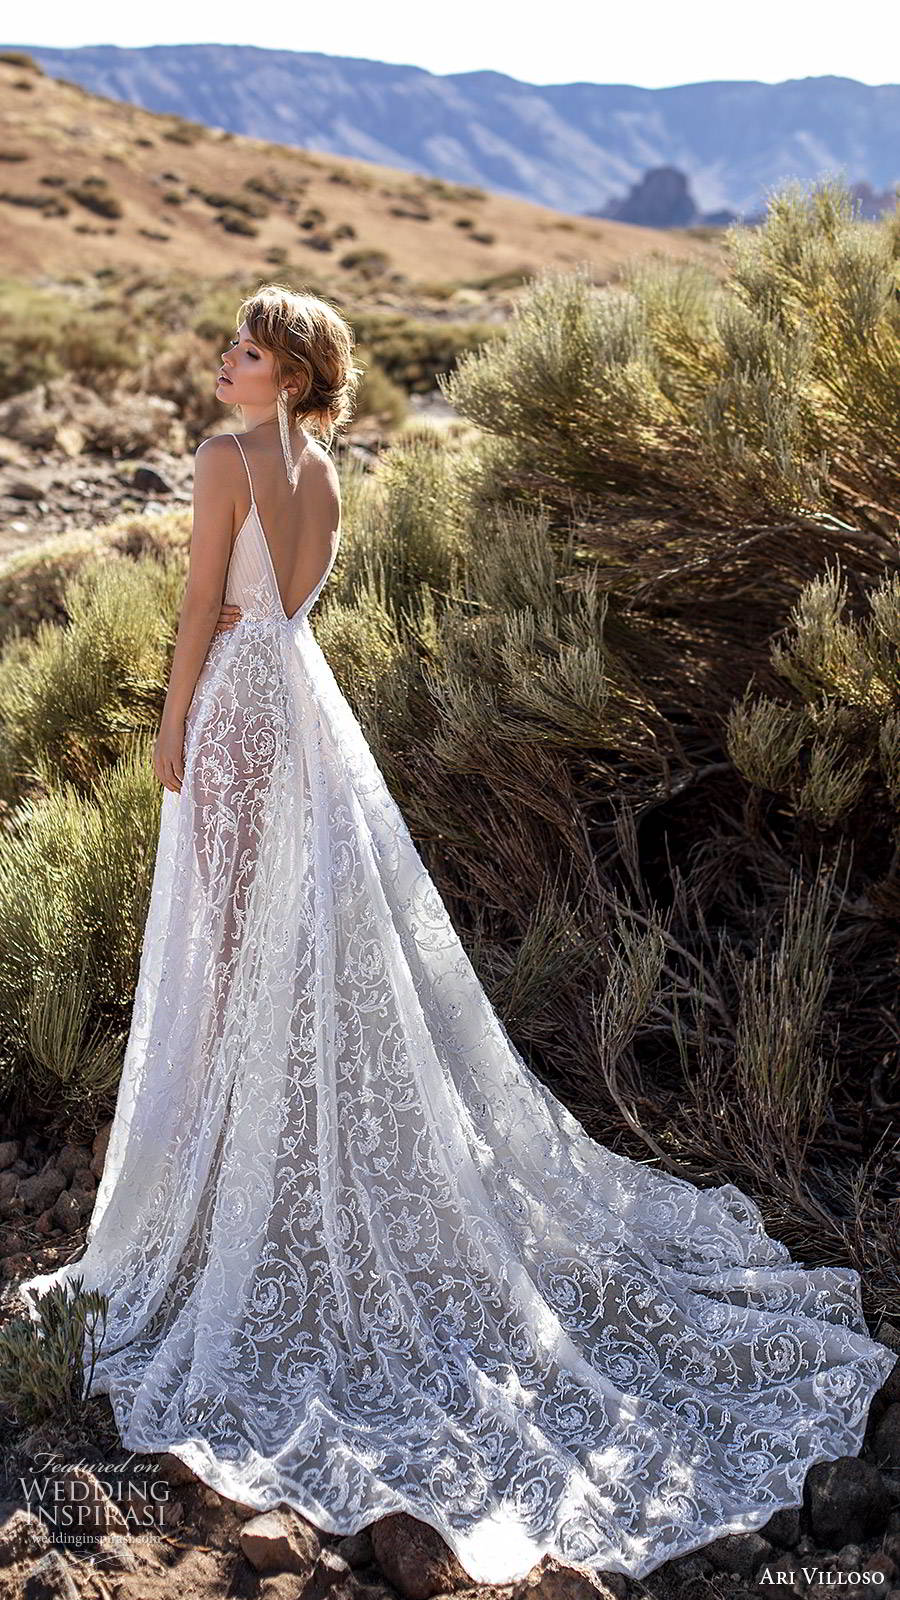 ari villoso 2020 bridal sleeveless thin straps plunging v neckline slit sheer skirt a line wedding dress (3) sexy boho v back chapel train bv